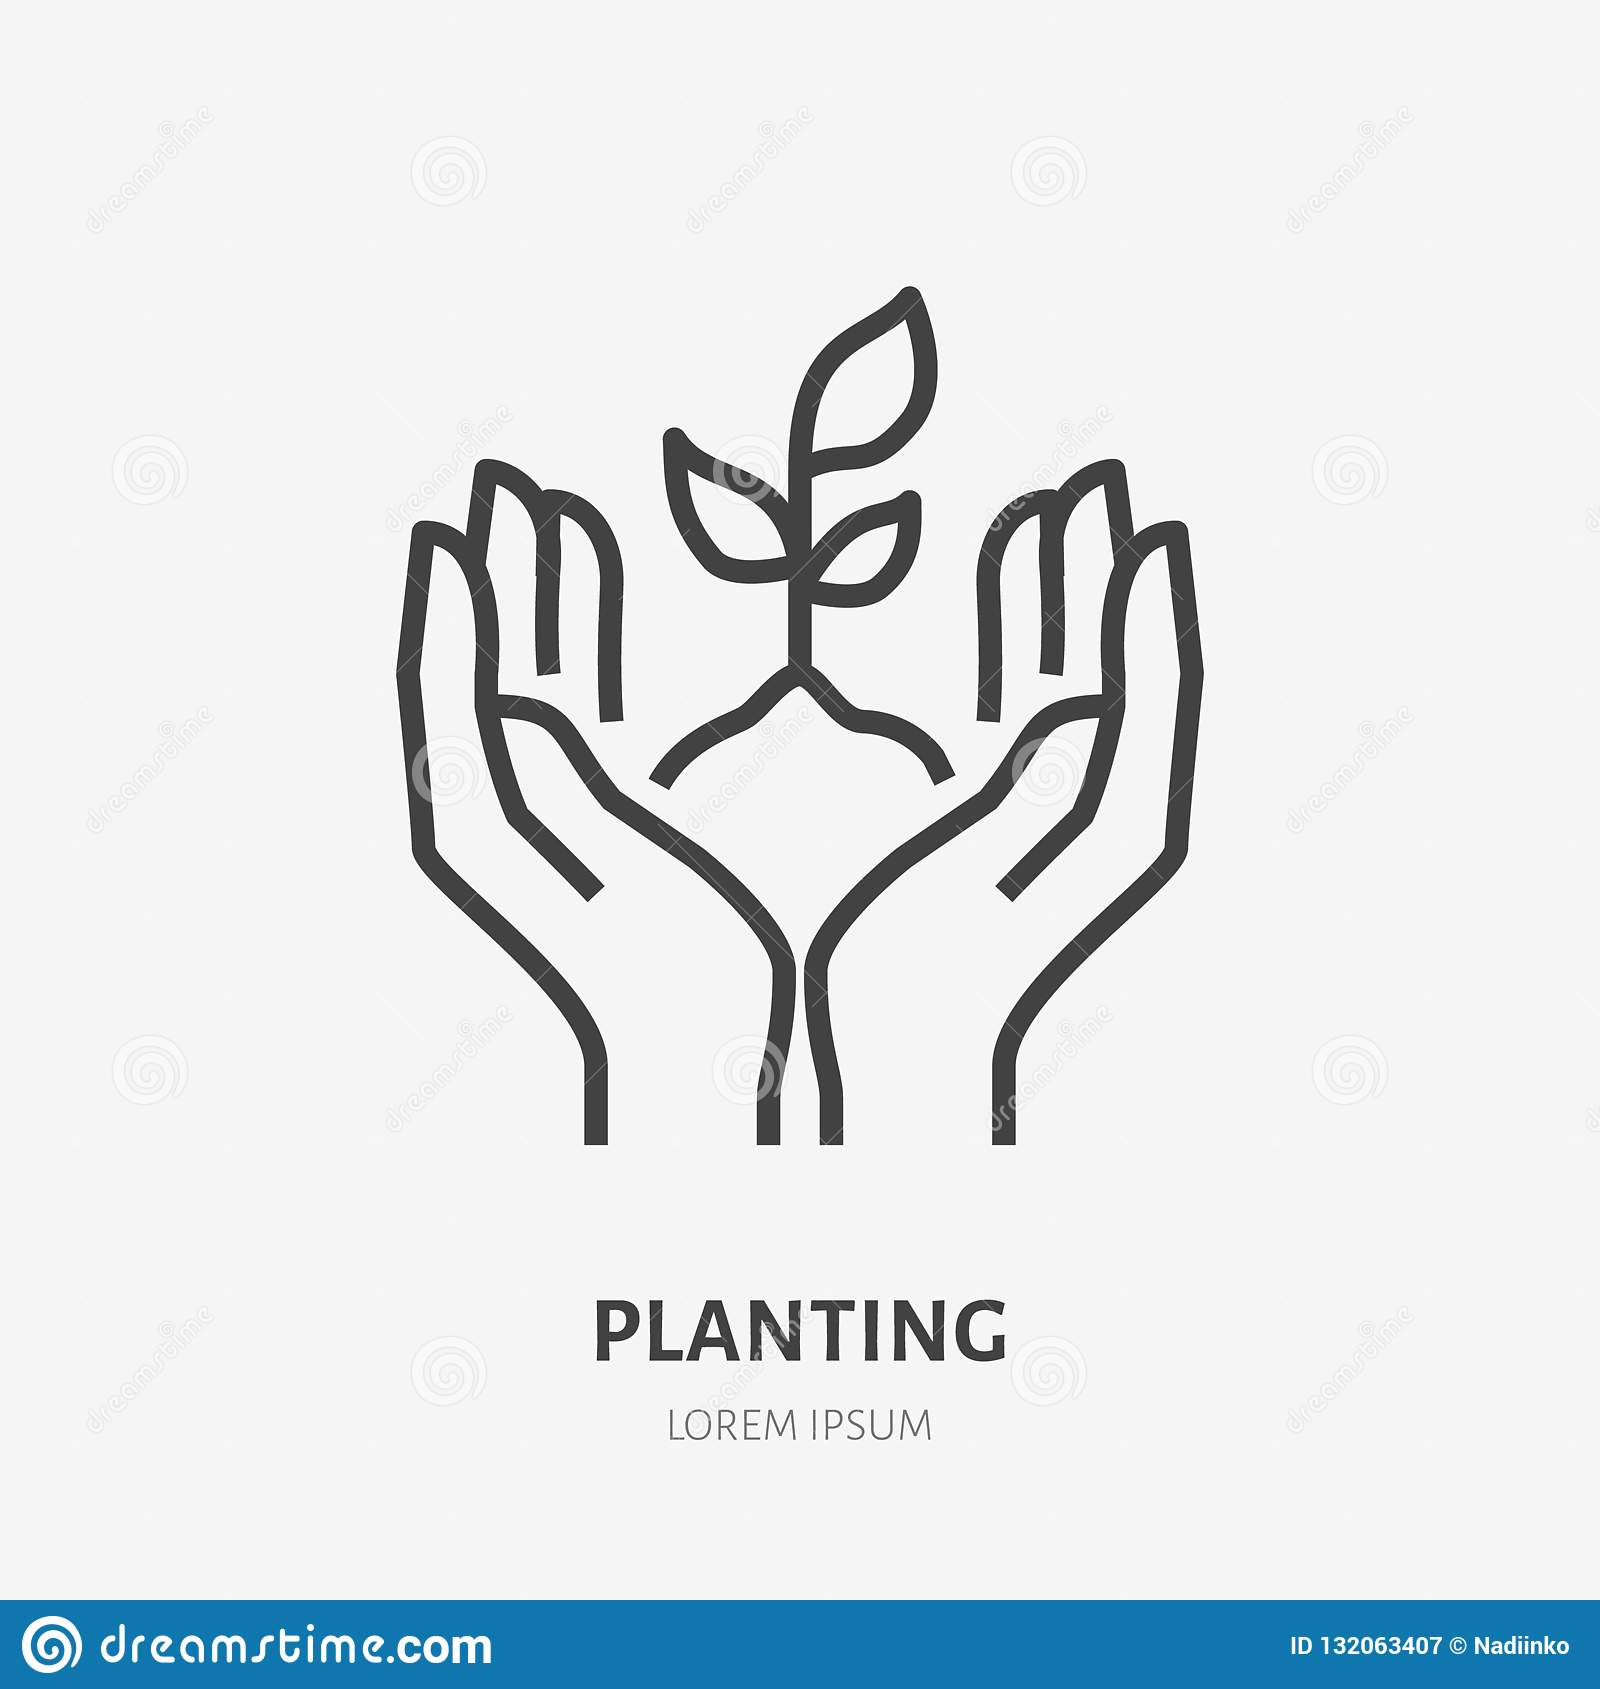 Hands holding soil with plant flat line icon. Vector thin sign of environment protection, ecology concept logo